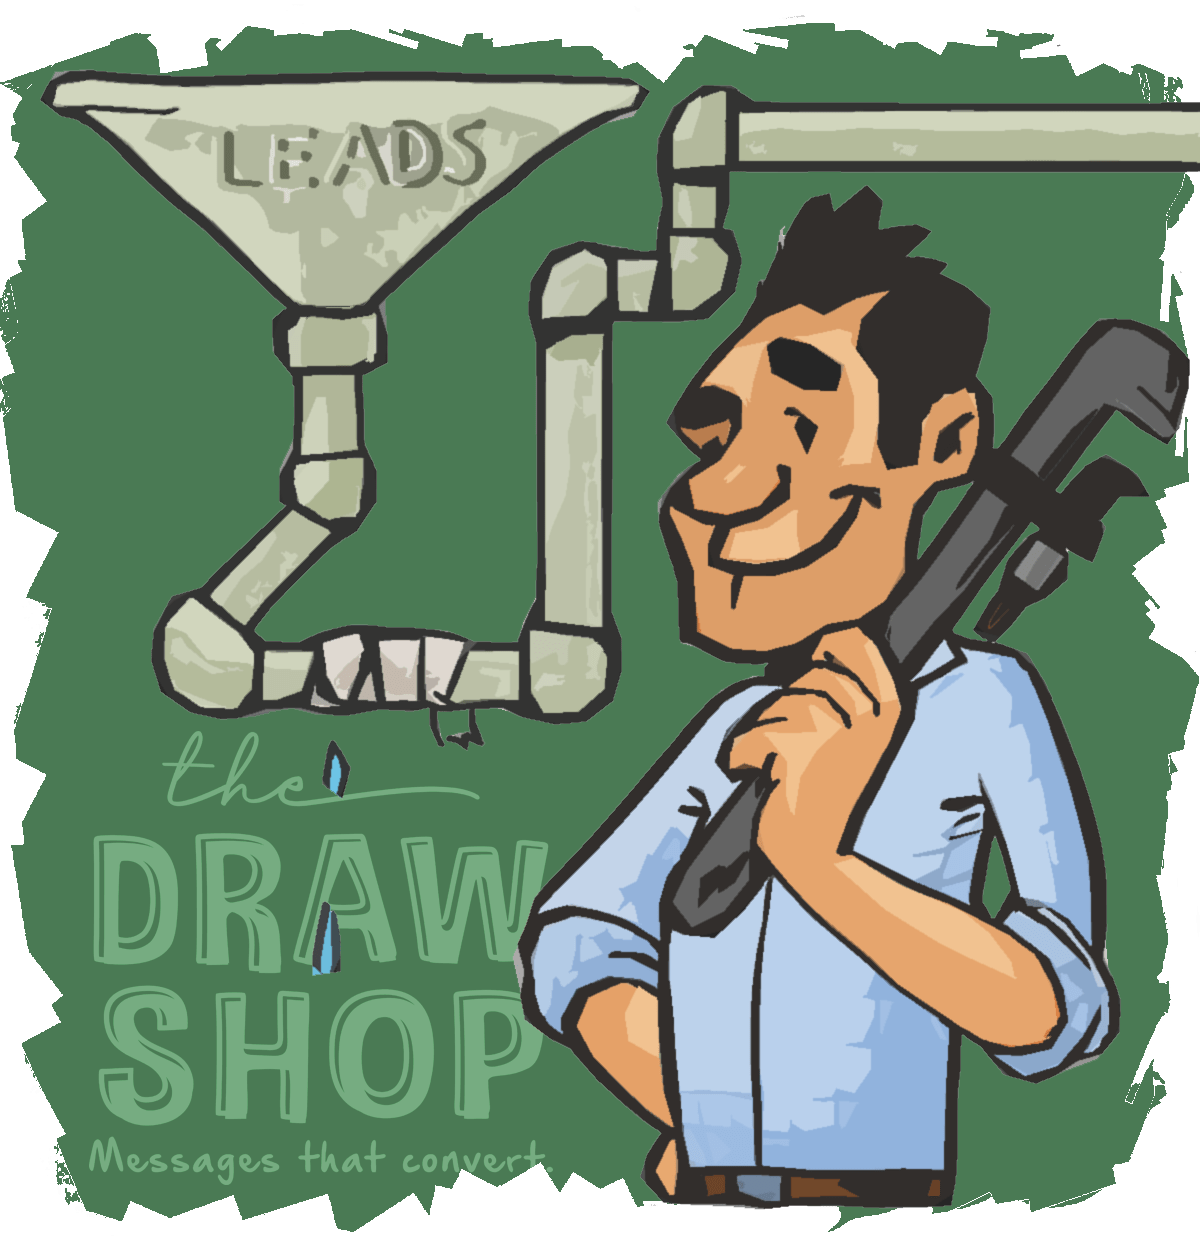 """Pictured: man in a blue shirt stands next to a funnel with pipes labeled """"leads""""; he is holding a wrench and smiling, having fixed the marketing funnel and stopped the leads from leaking out"""